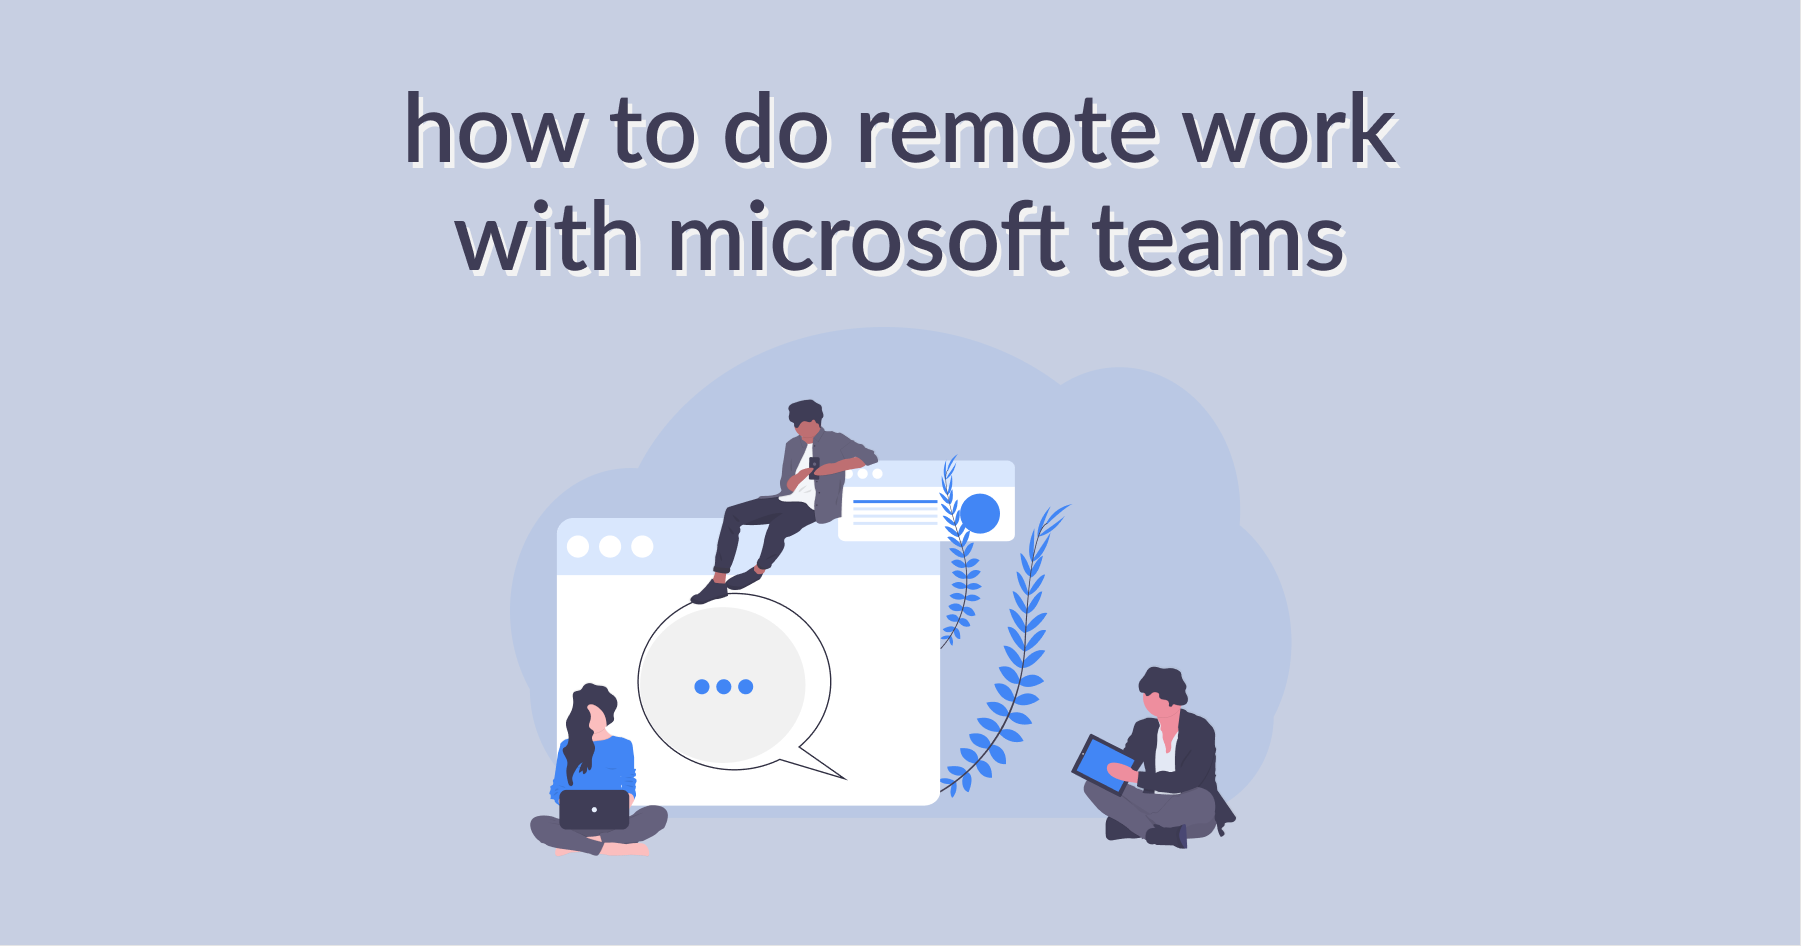 How to Do Remote Work with Microsoft Teams